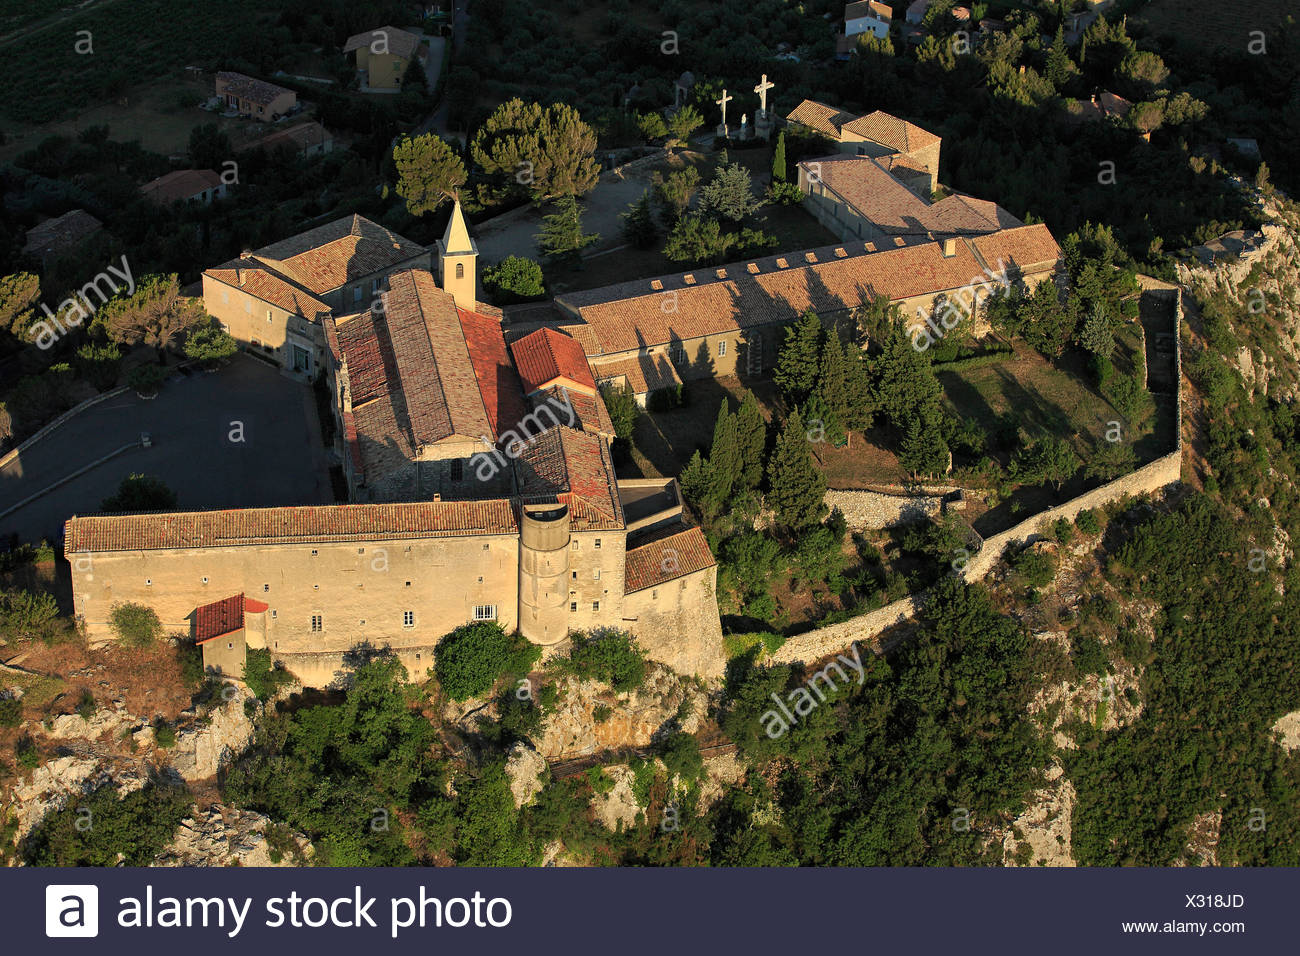 France, Gard (30), Rochefort-du-Gard, Sanctuary Notre-Dame-de-Grâce built on a rocky spur, (aerial photo) - Stock Image